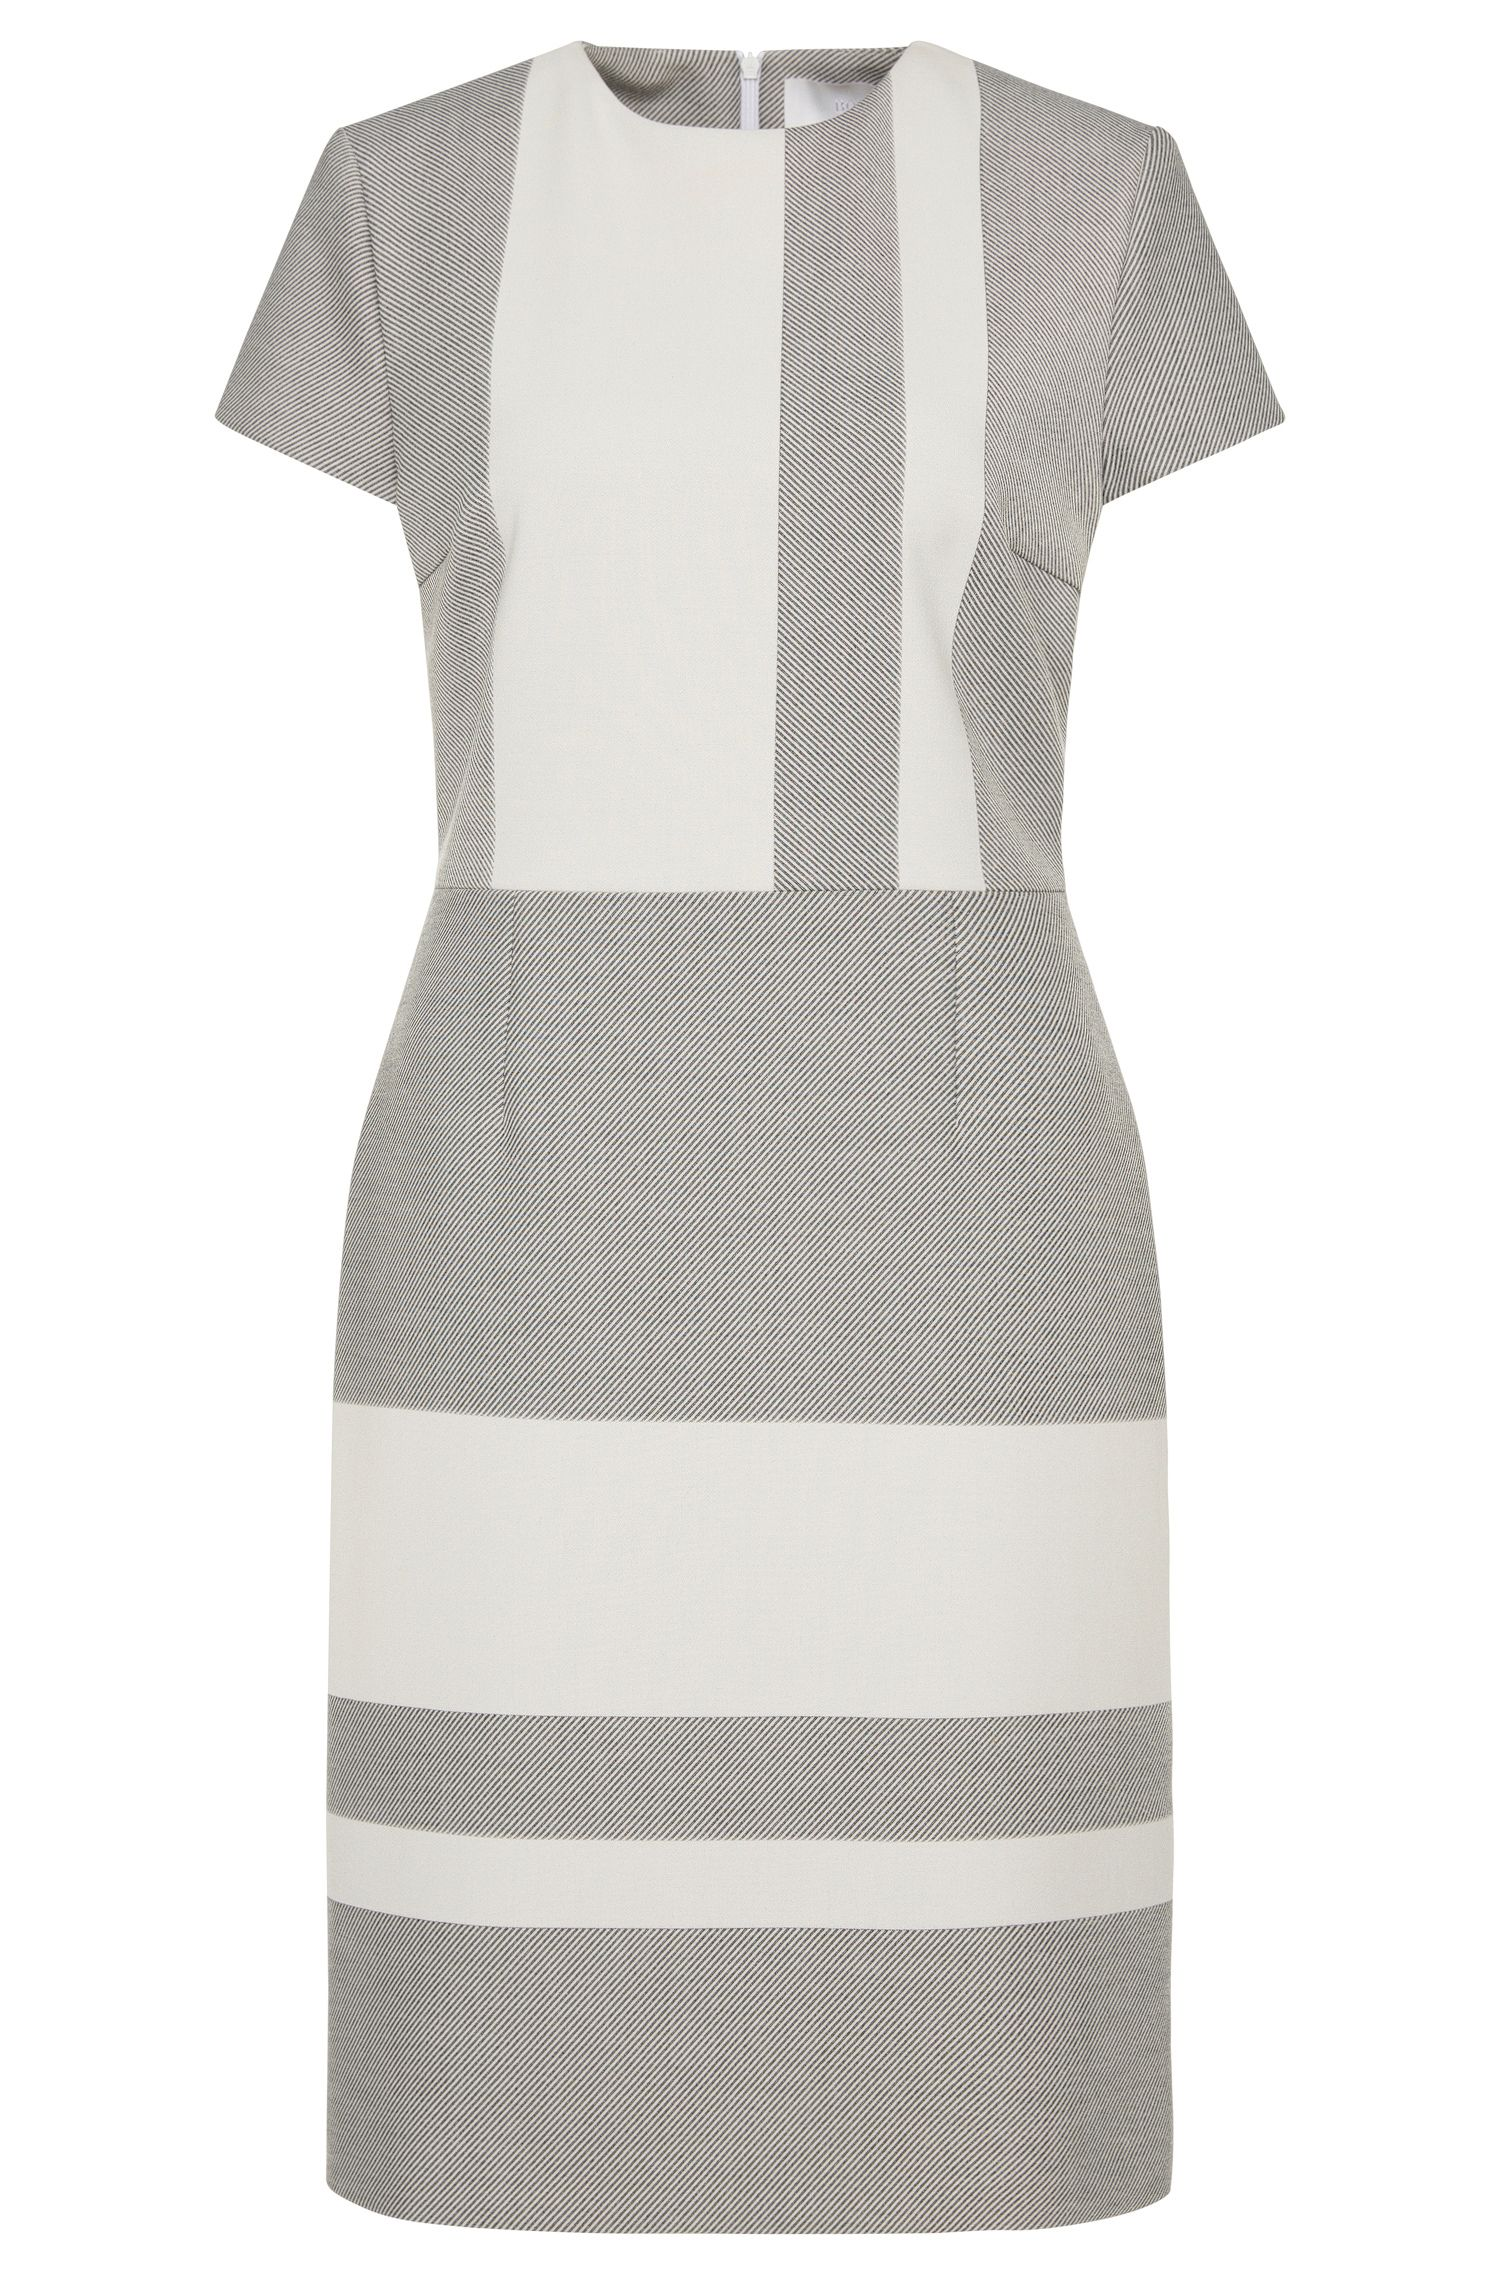 'Hermley' | Stretch Twill Colorblock A-Line Dress